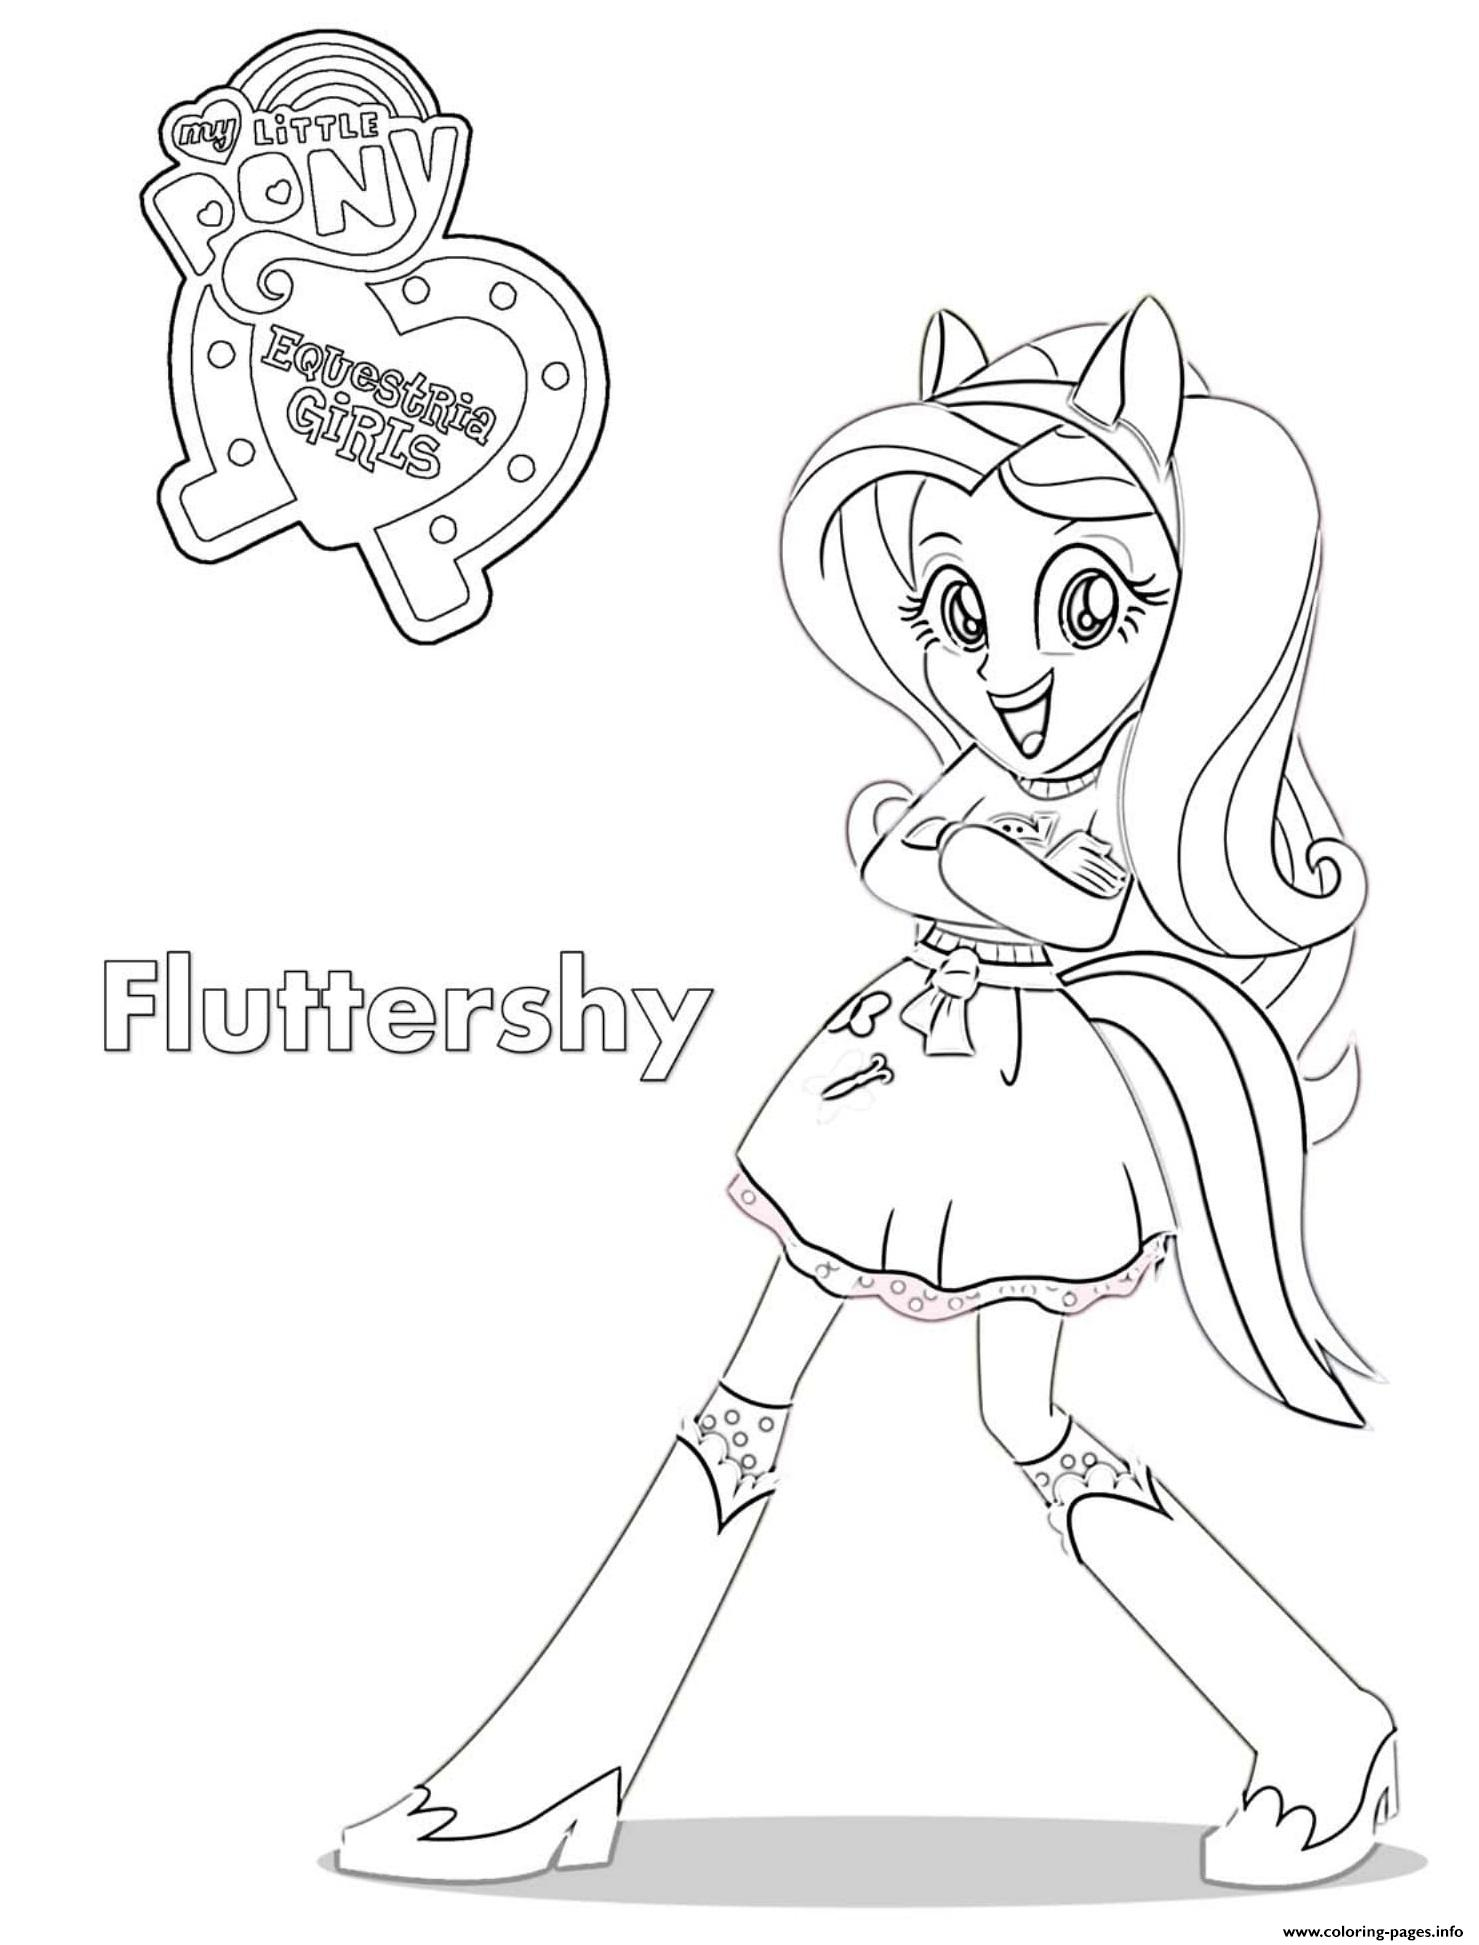 Equestria Girls Fluttershy Coloring